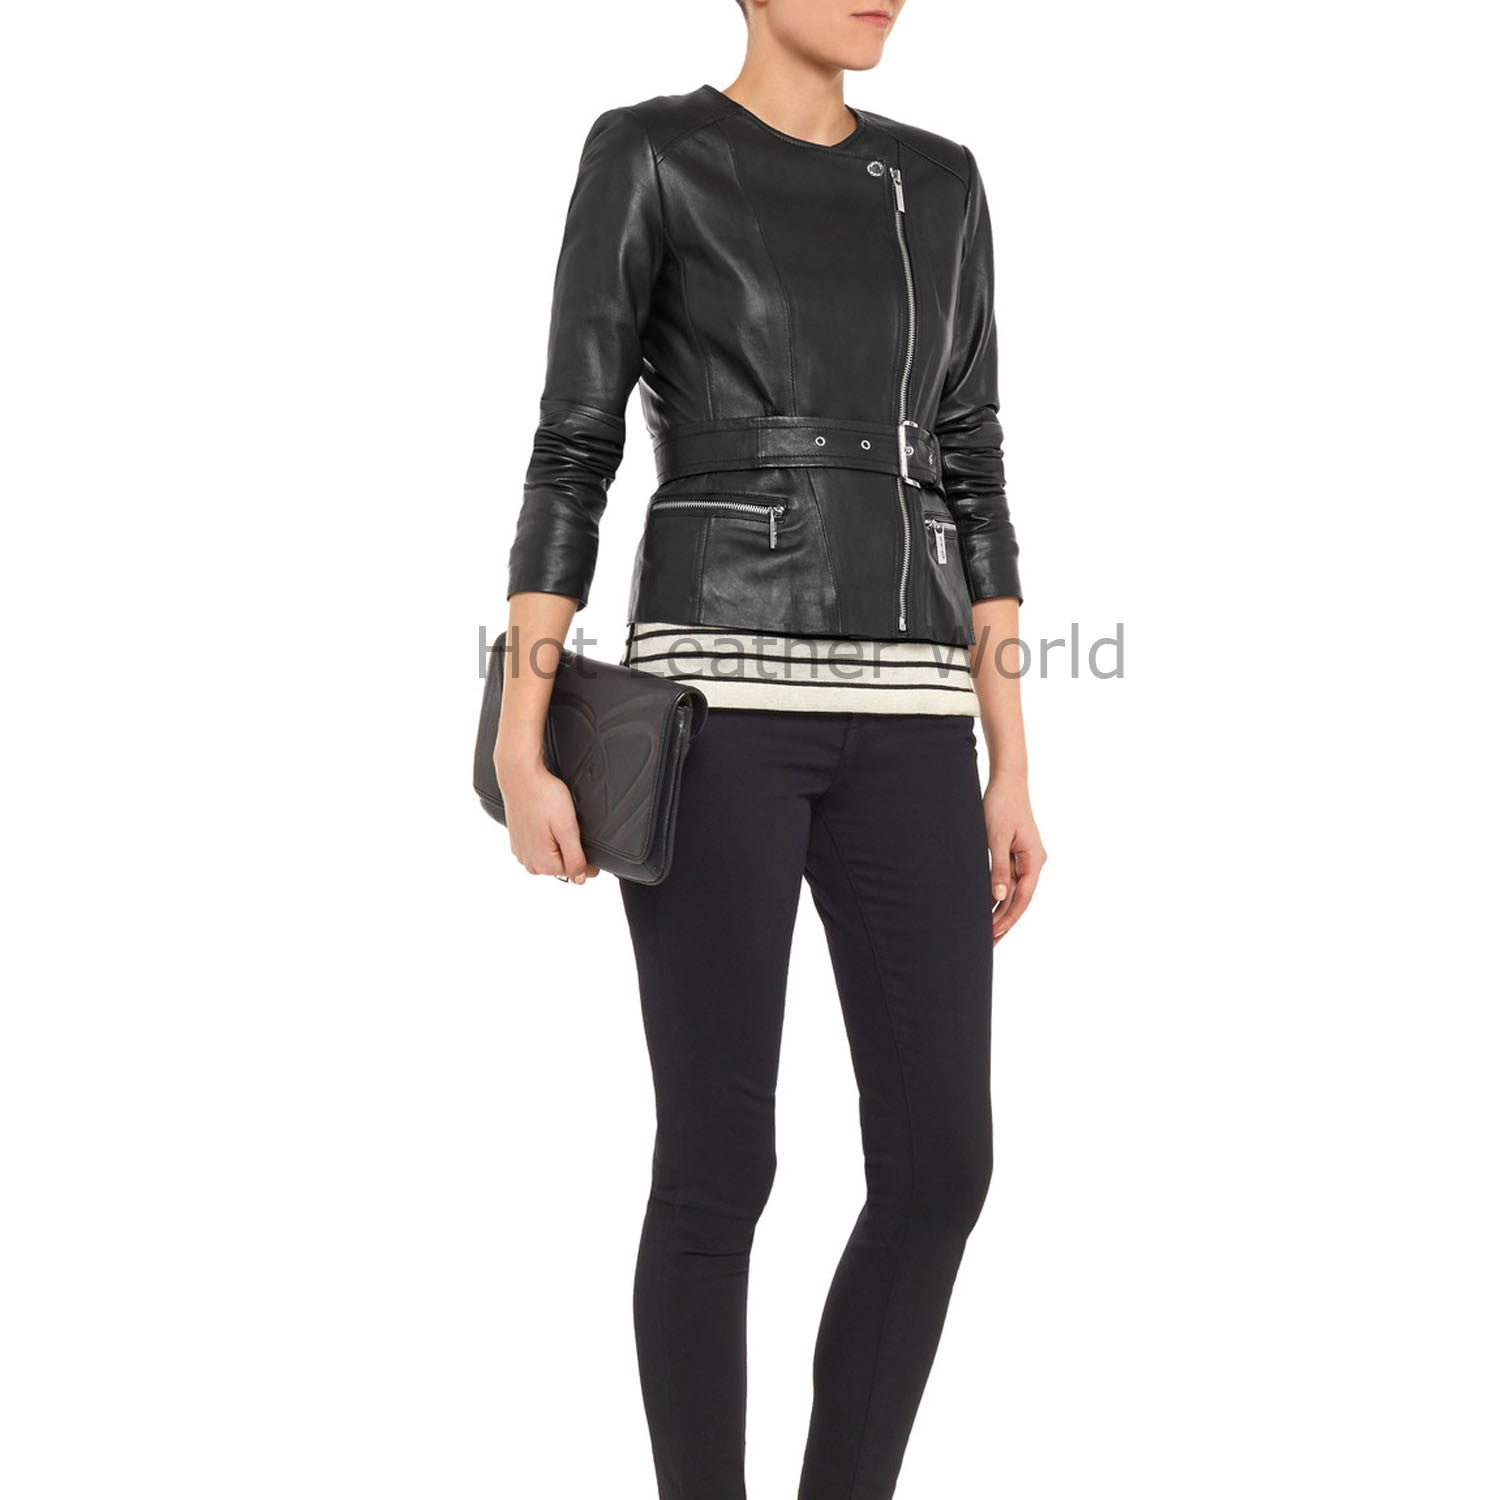 Round Neck Women Leather Biker Jacket -  HOTLEATHERWORLD